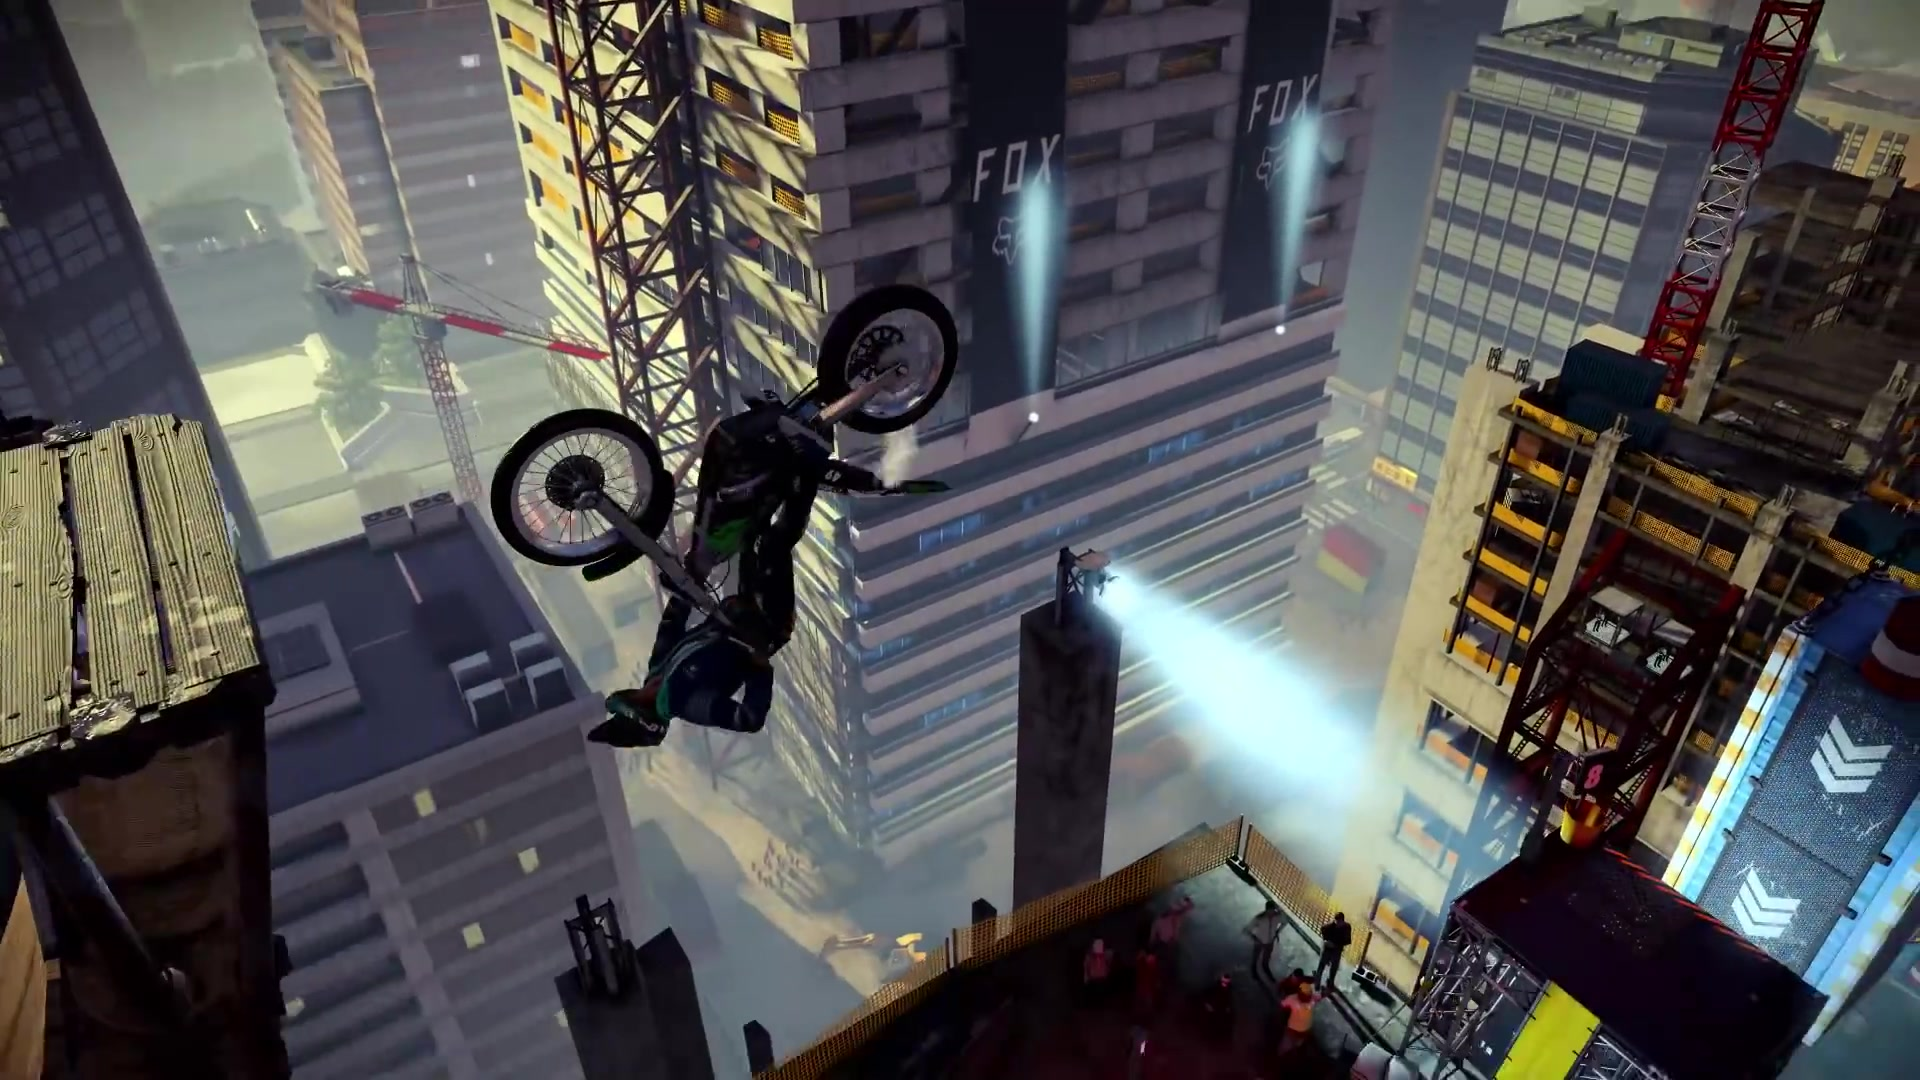 Trial rising 078.jpg - Trials Rising